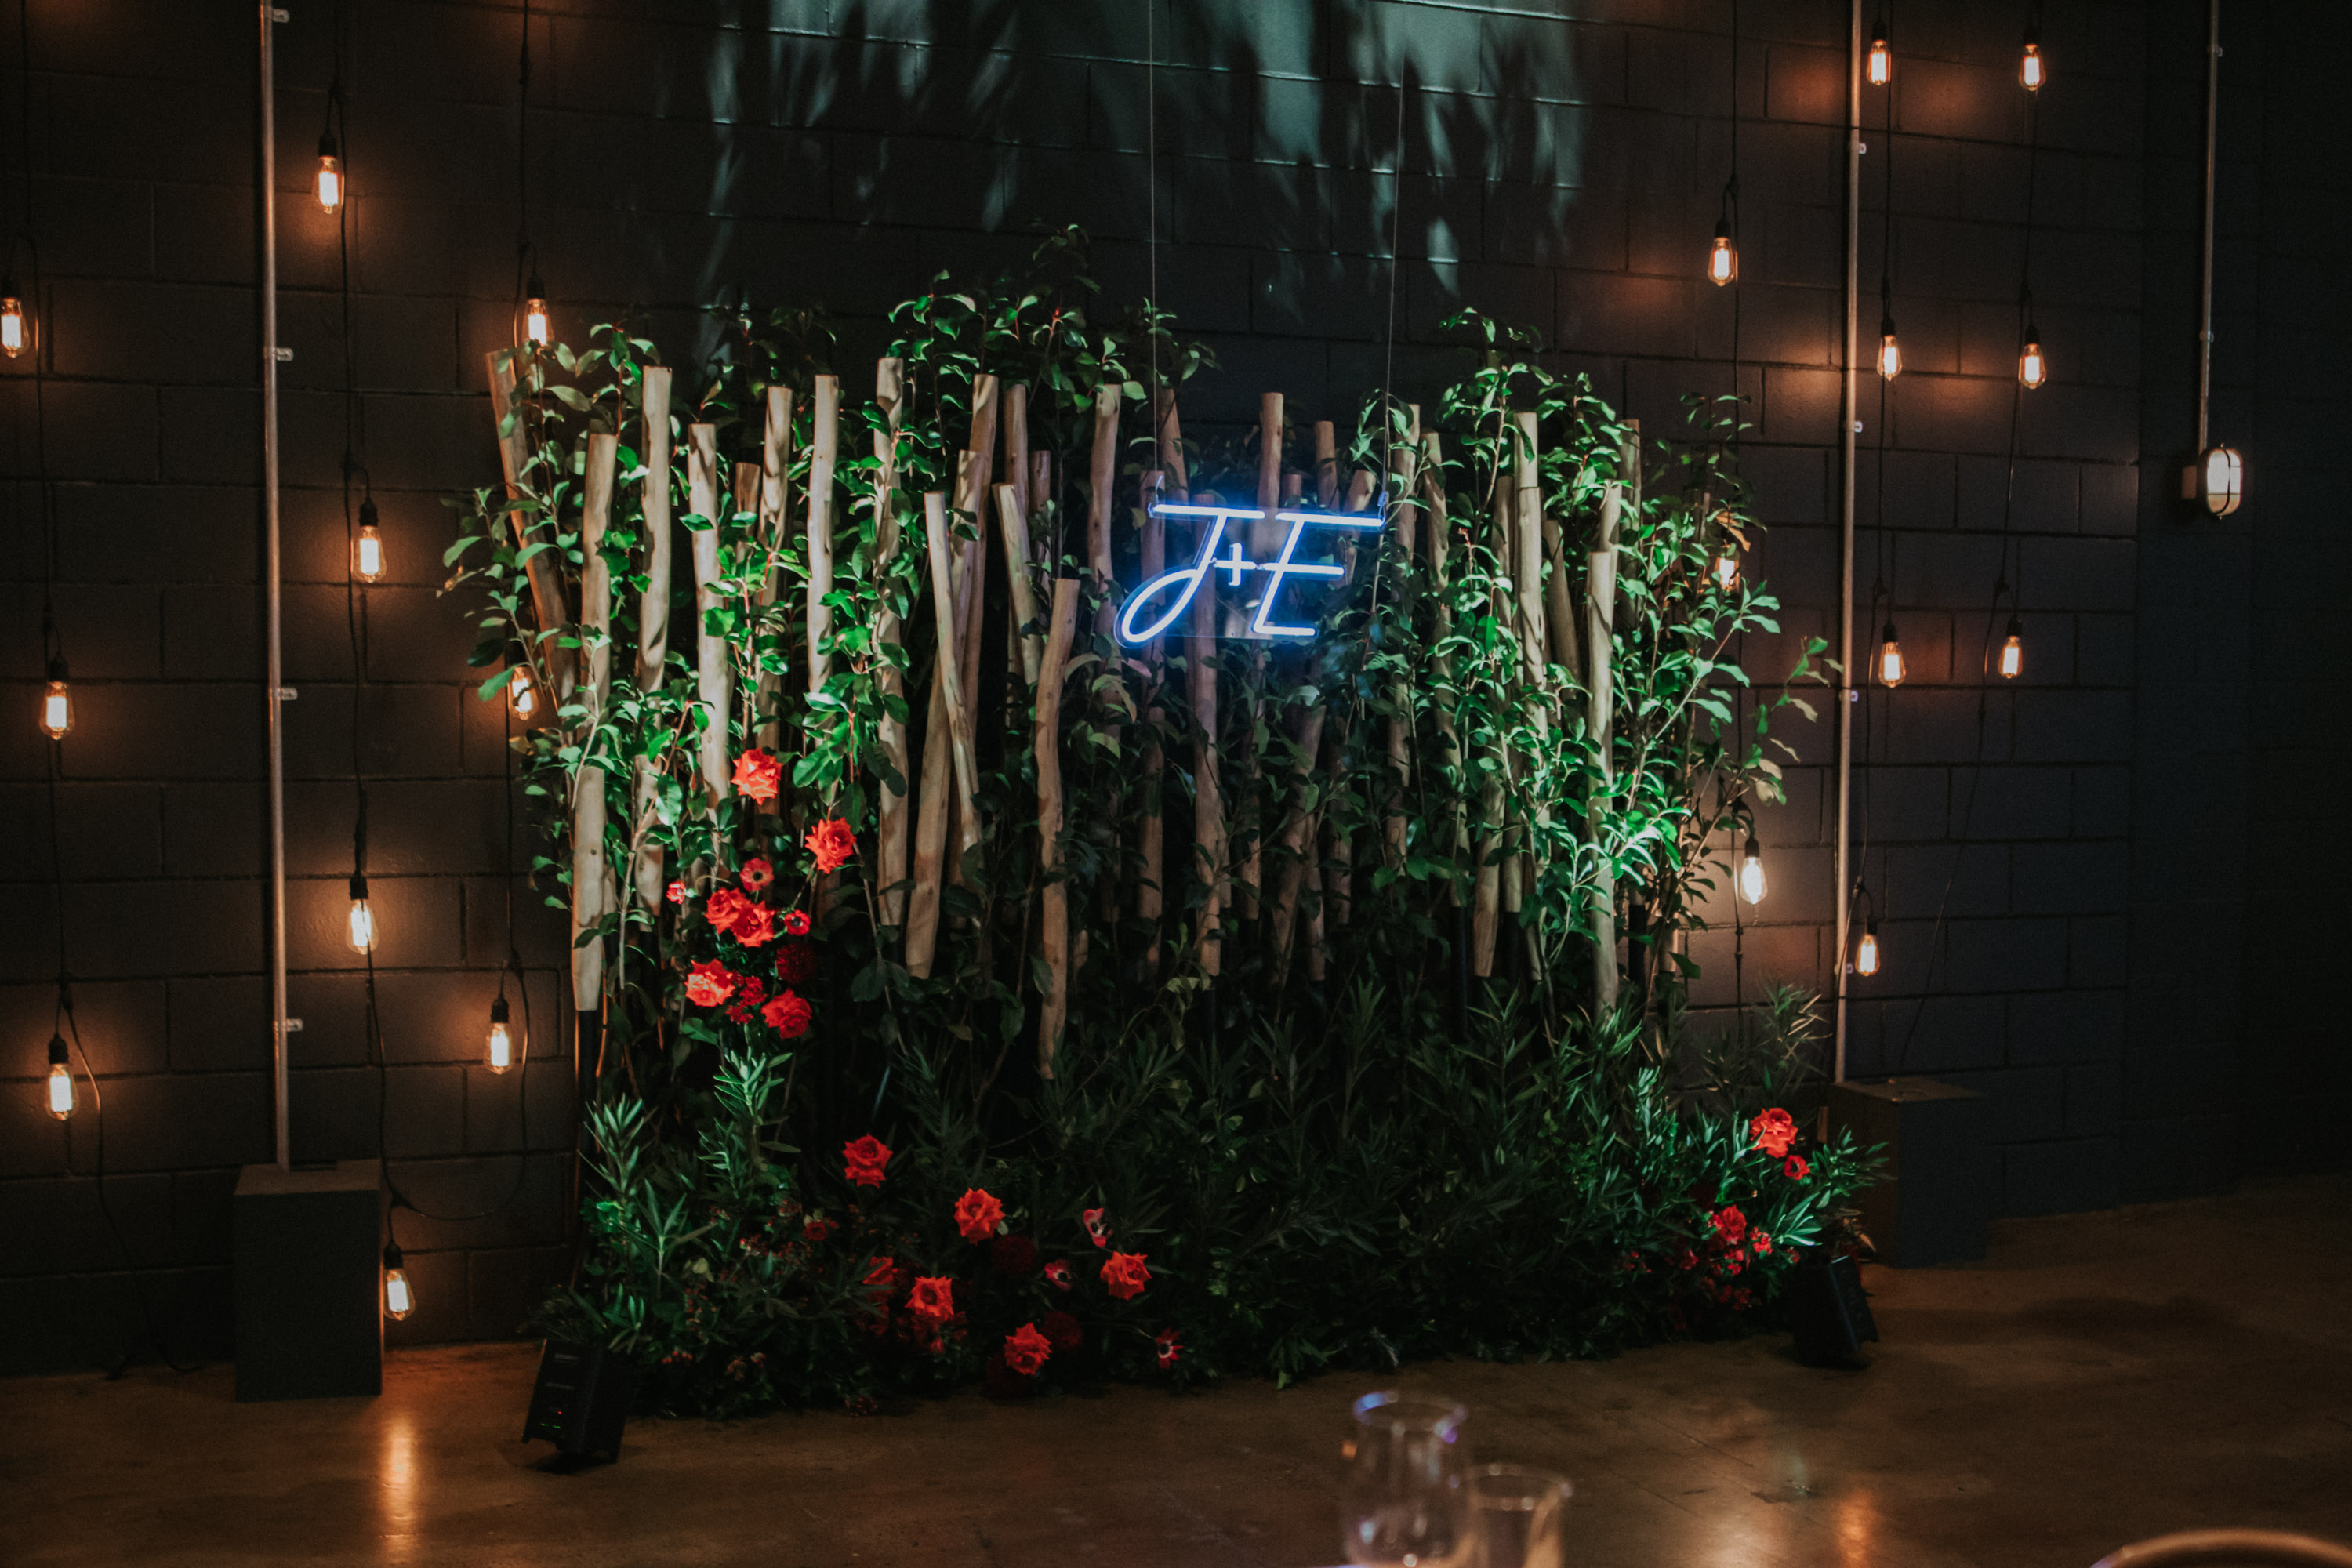 white+white weddings and events the wedding school emily and jack lightspace wedding greenery ceremony florals suspended hanging bentwood chairs asha reception table table number whole room long tableware neon sign